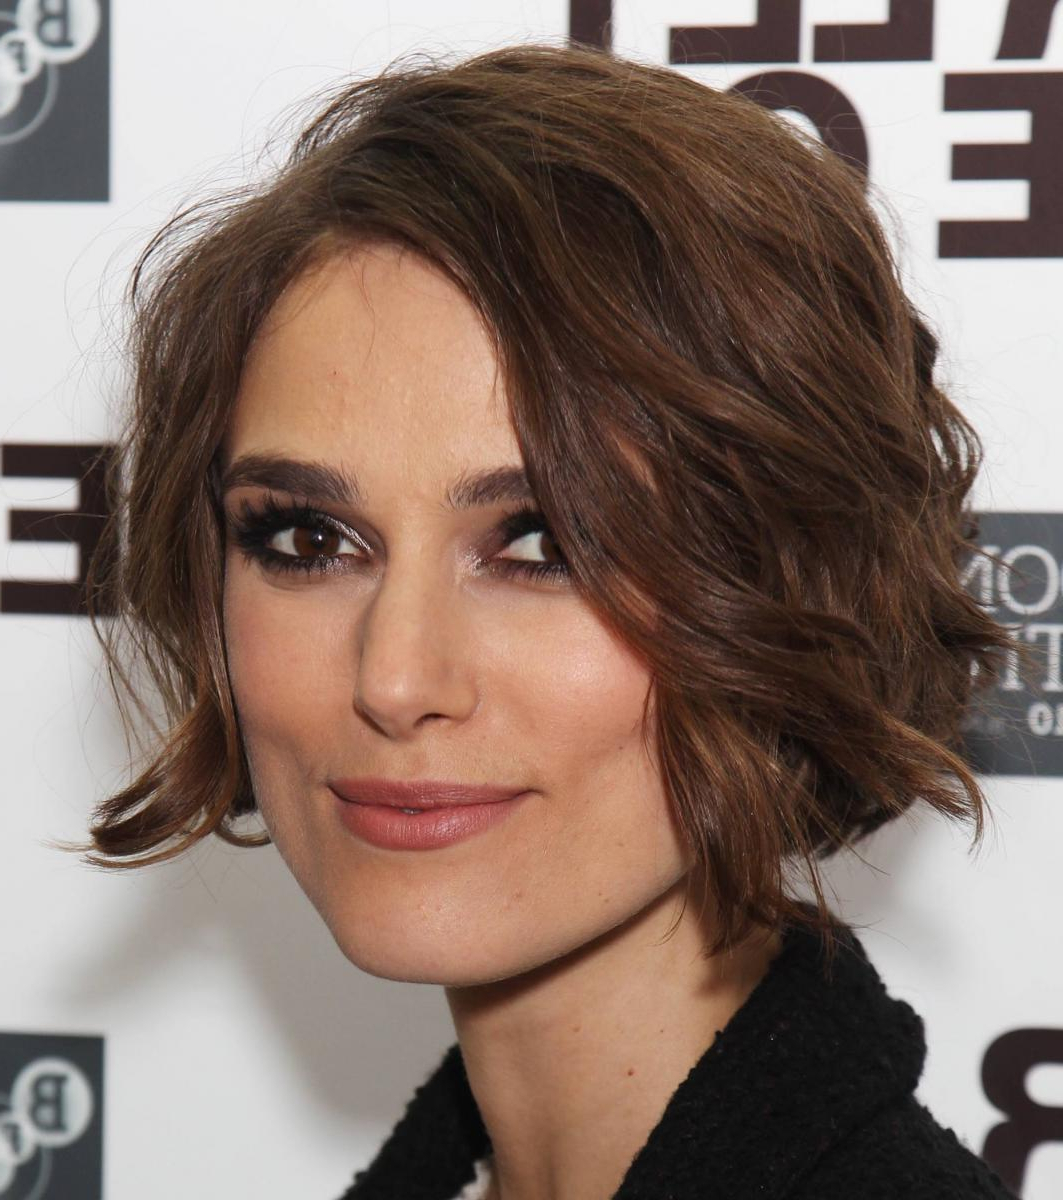 Short Hairstyles Your Face   Hairtechkearney Pertaining To Easy Care Short Haircuts (View 24 of 25)